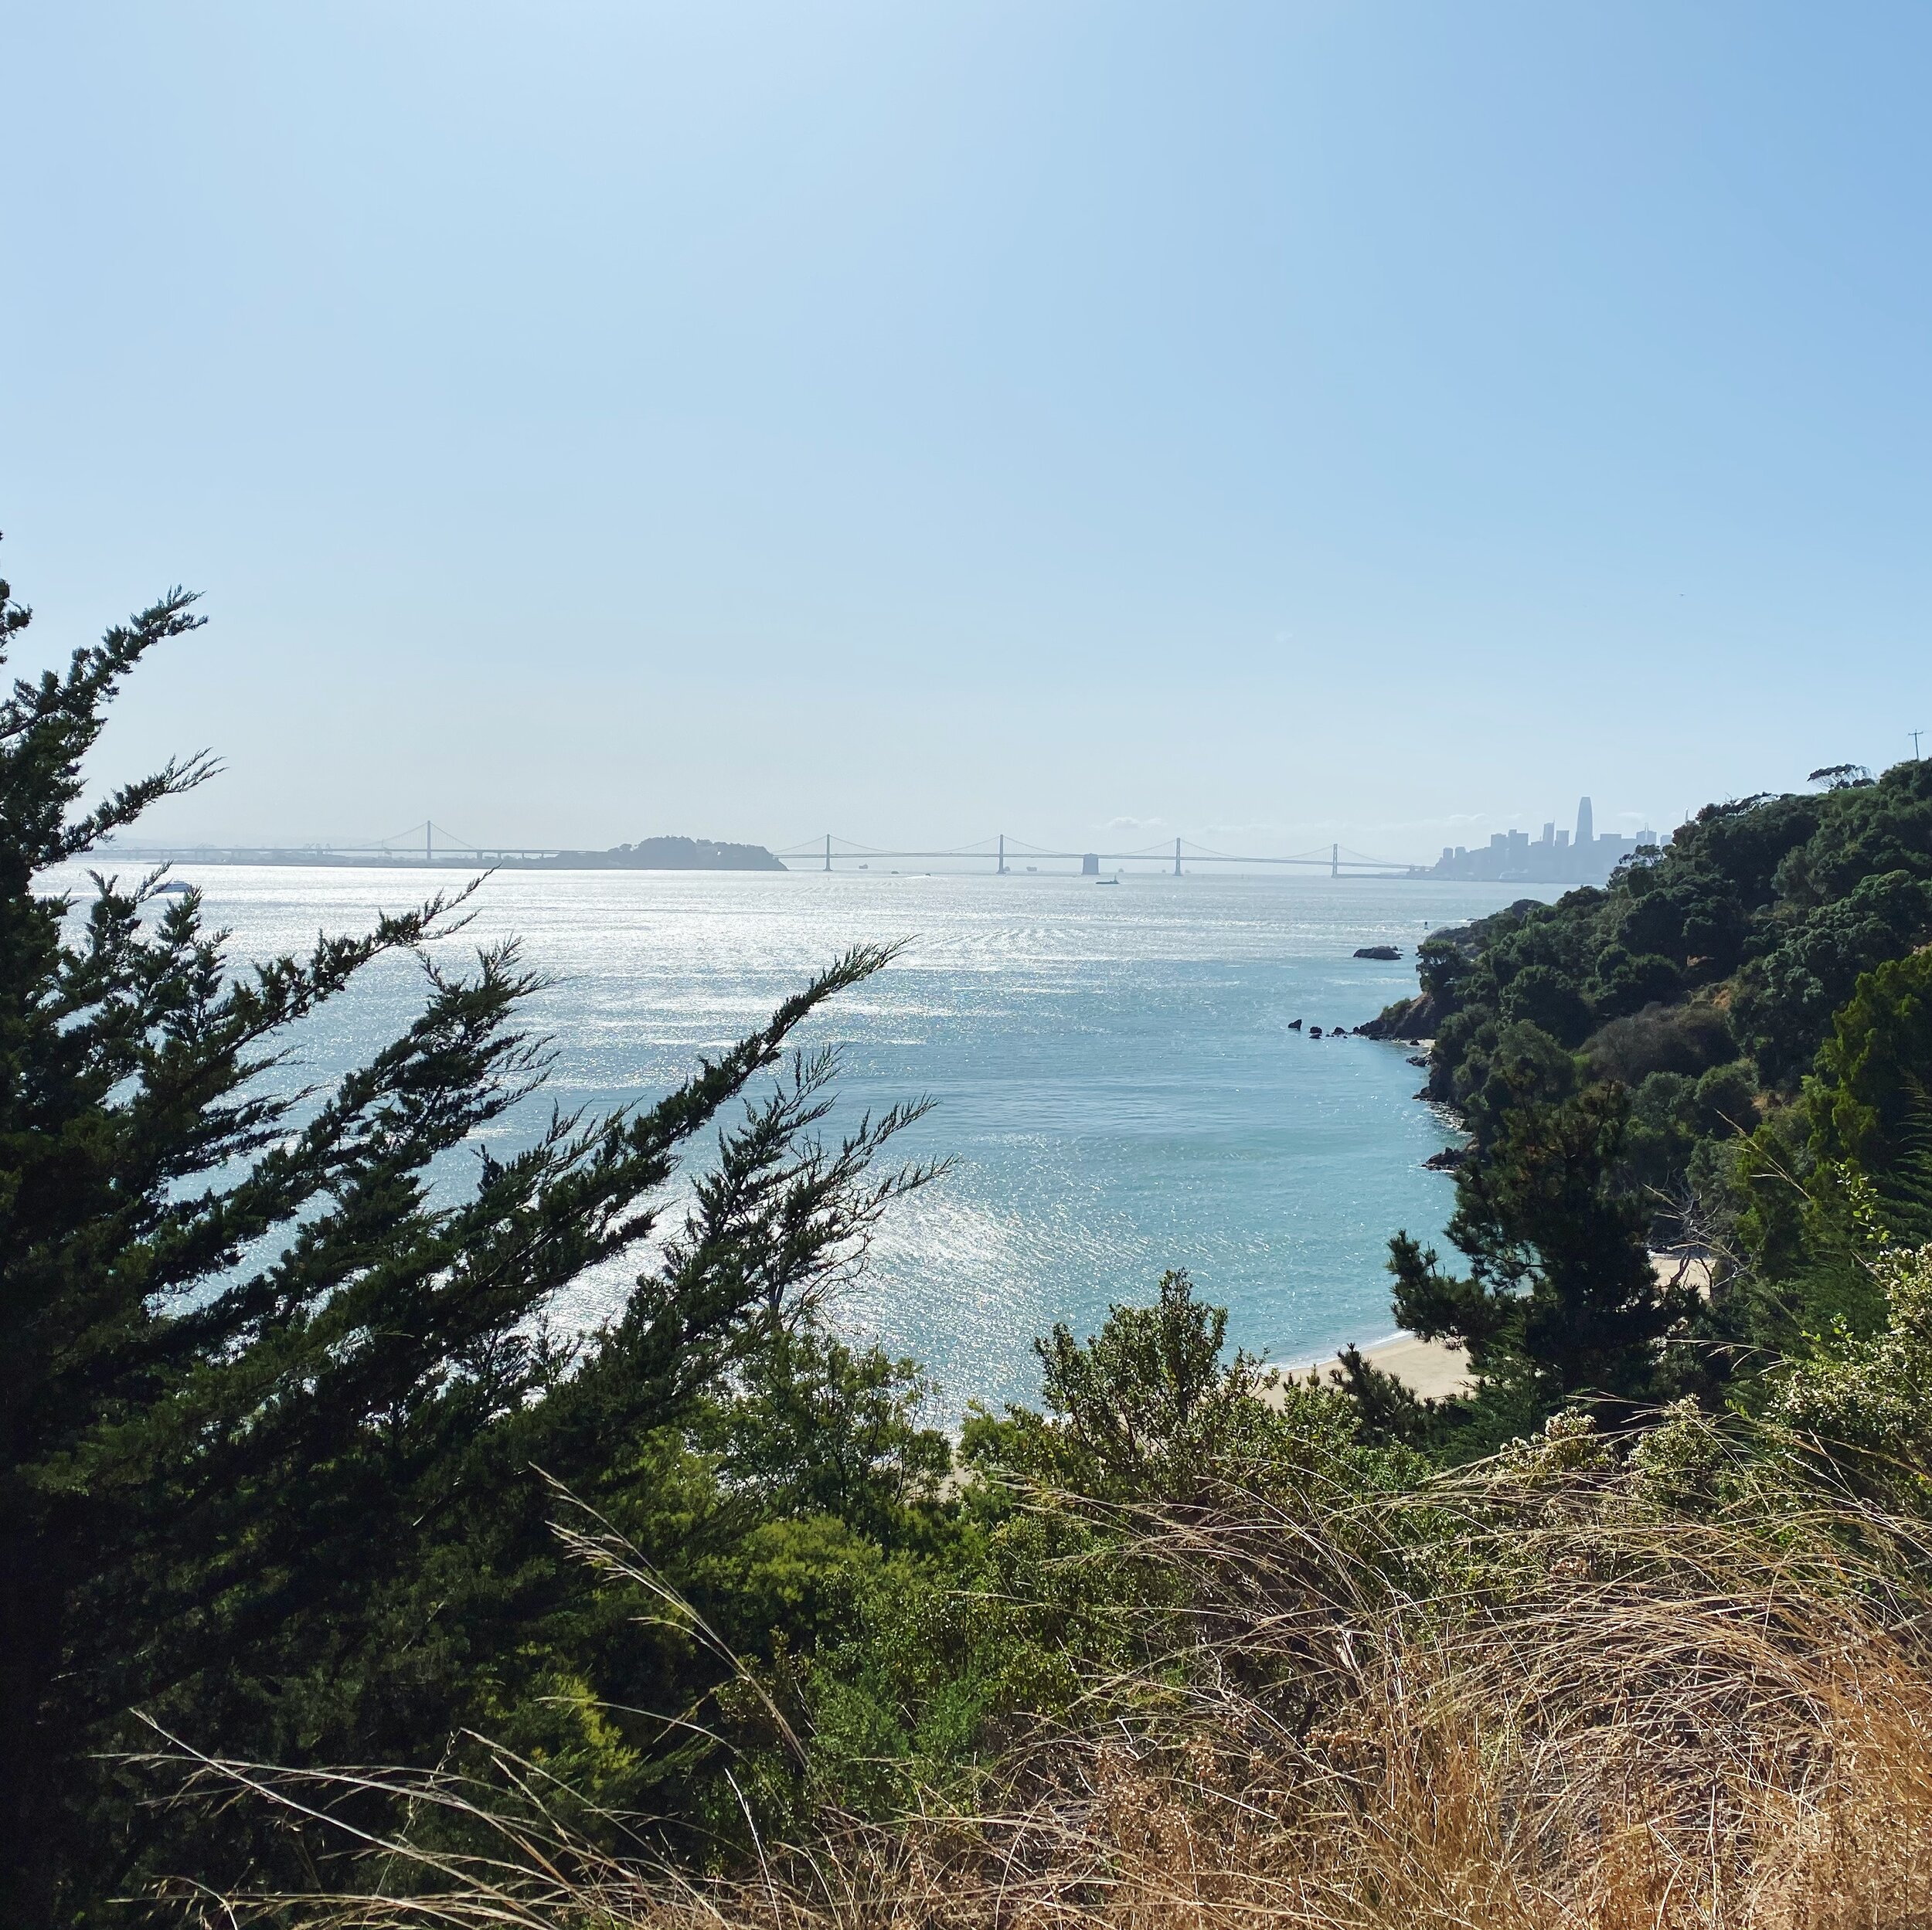 A view of the Bay Bridge from Angel Island.